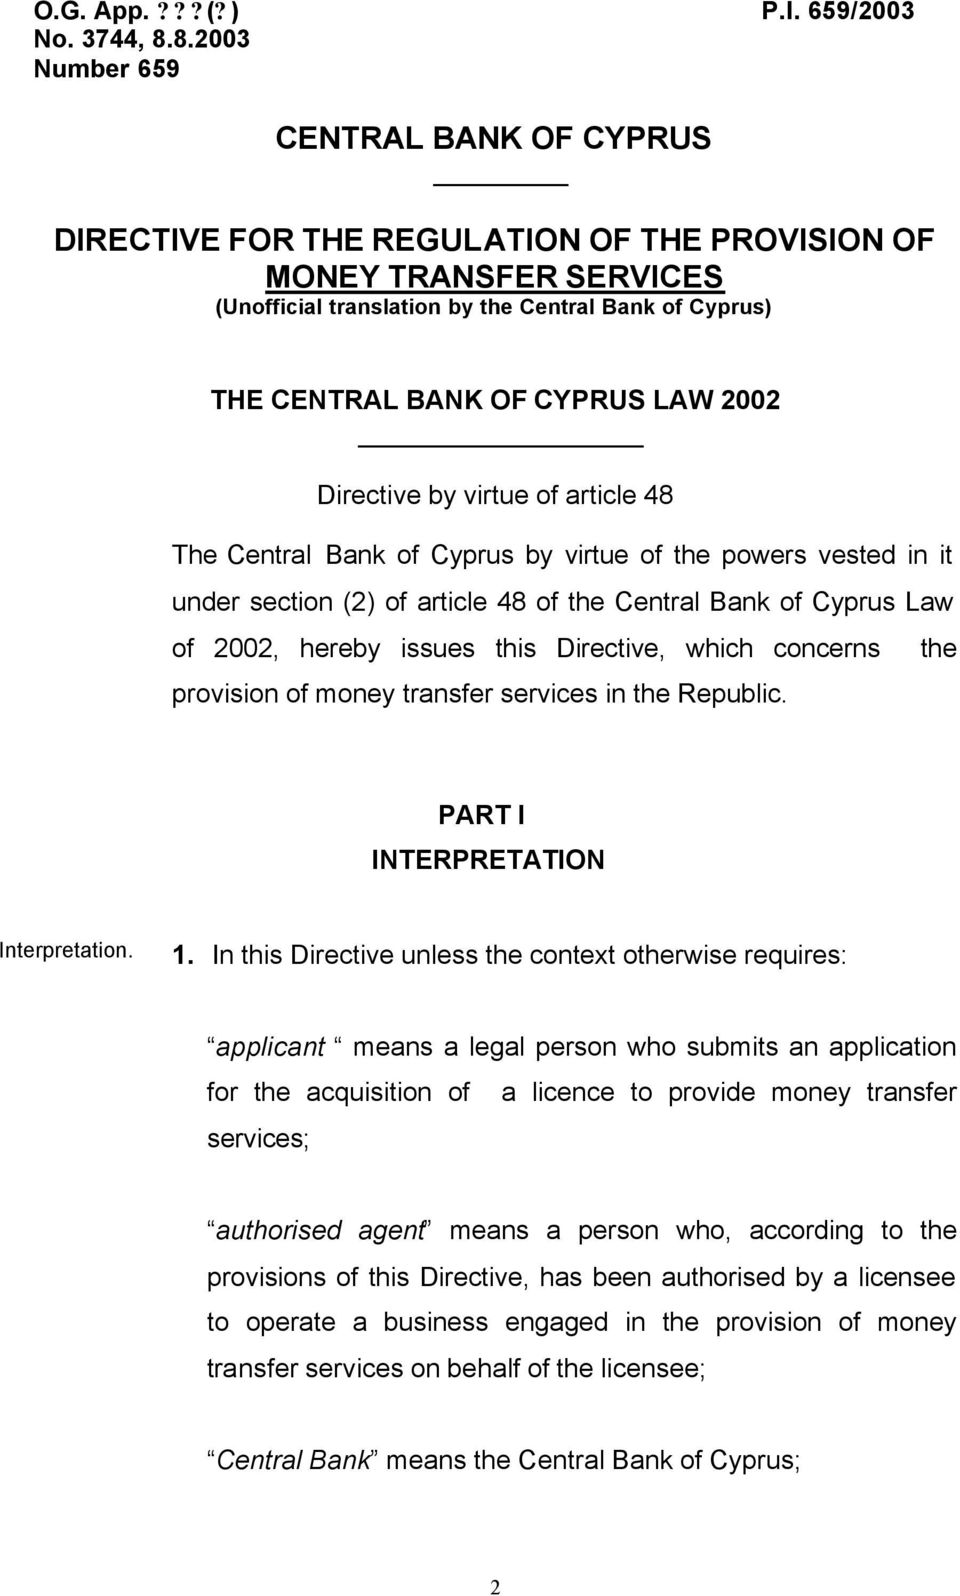 2002 Directive by virtue of article 48 The Central Bank of Cyprus by virtue of the powers vested in it under section (2) of article 48 of the Central Bank of Cyprus Law of 2002, hereby issues this